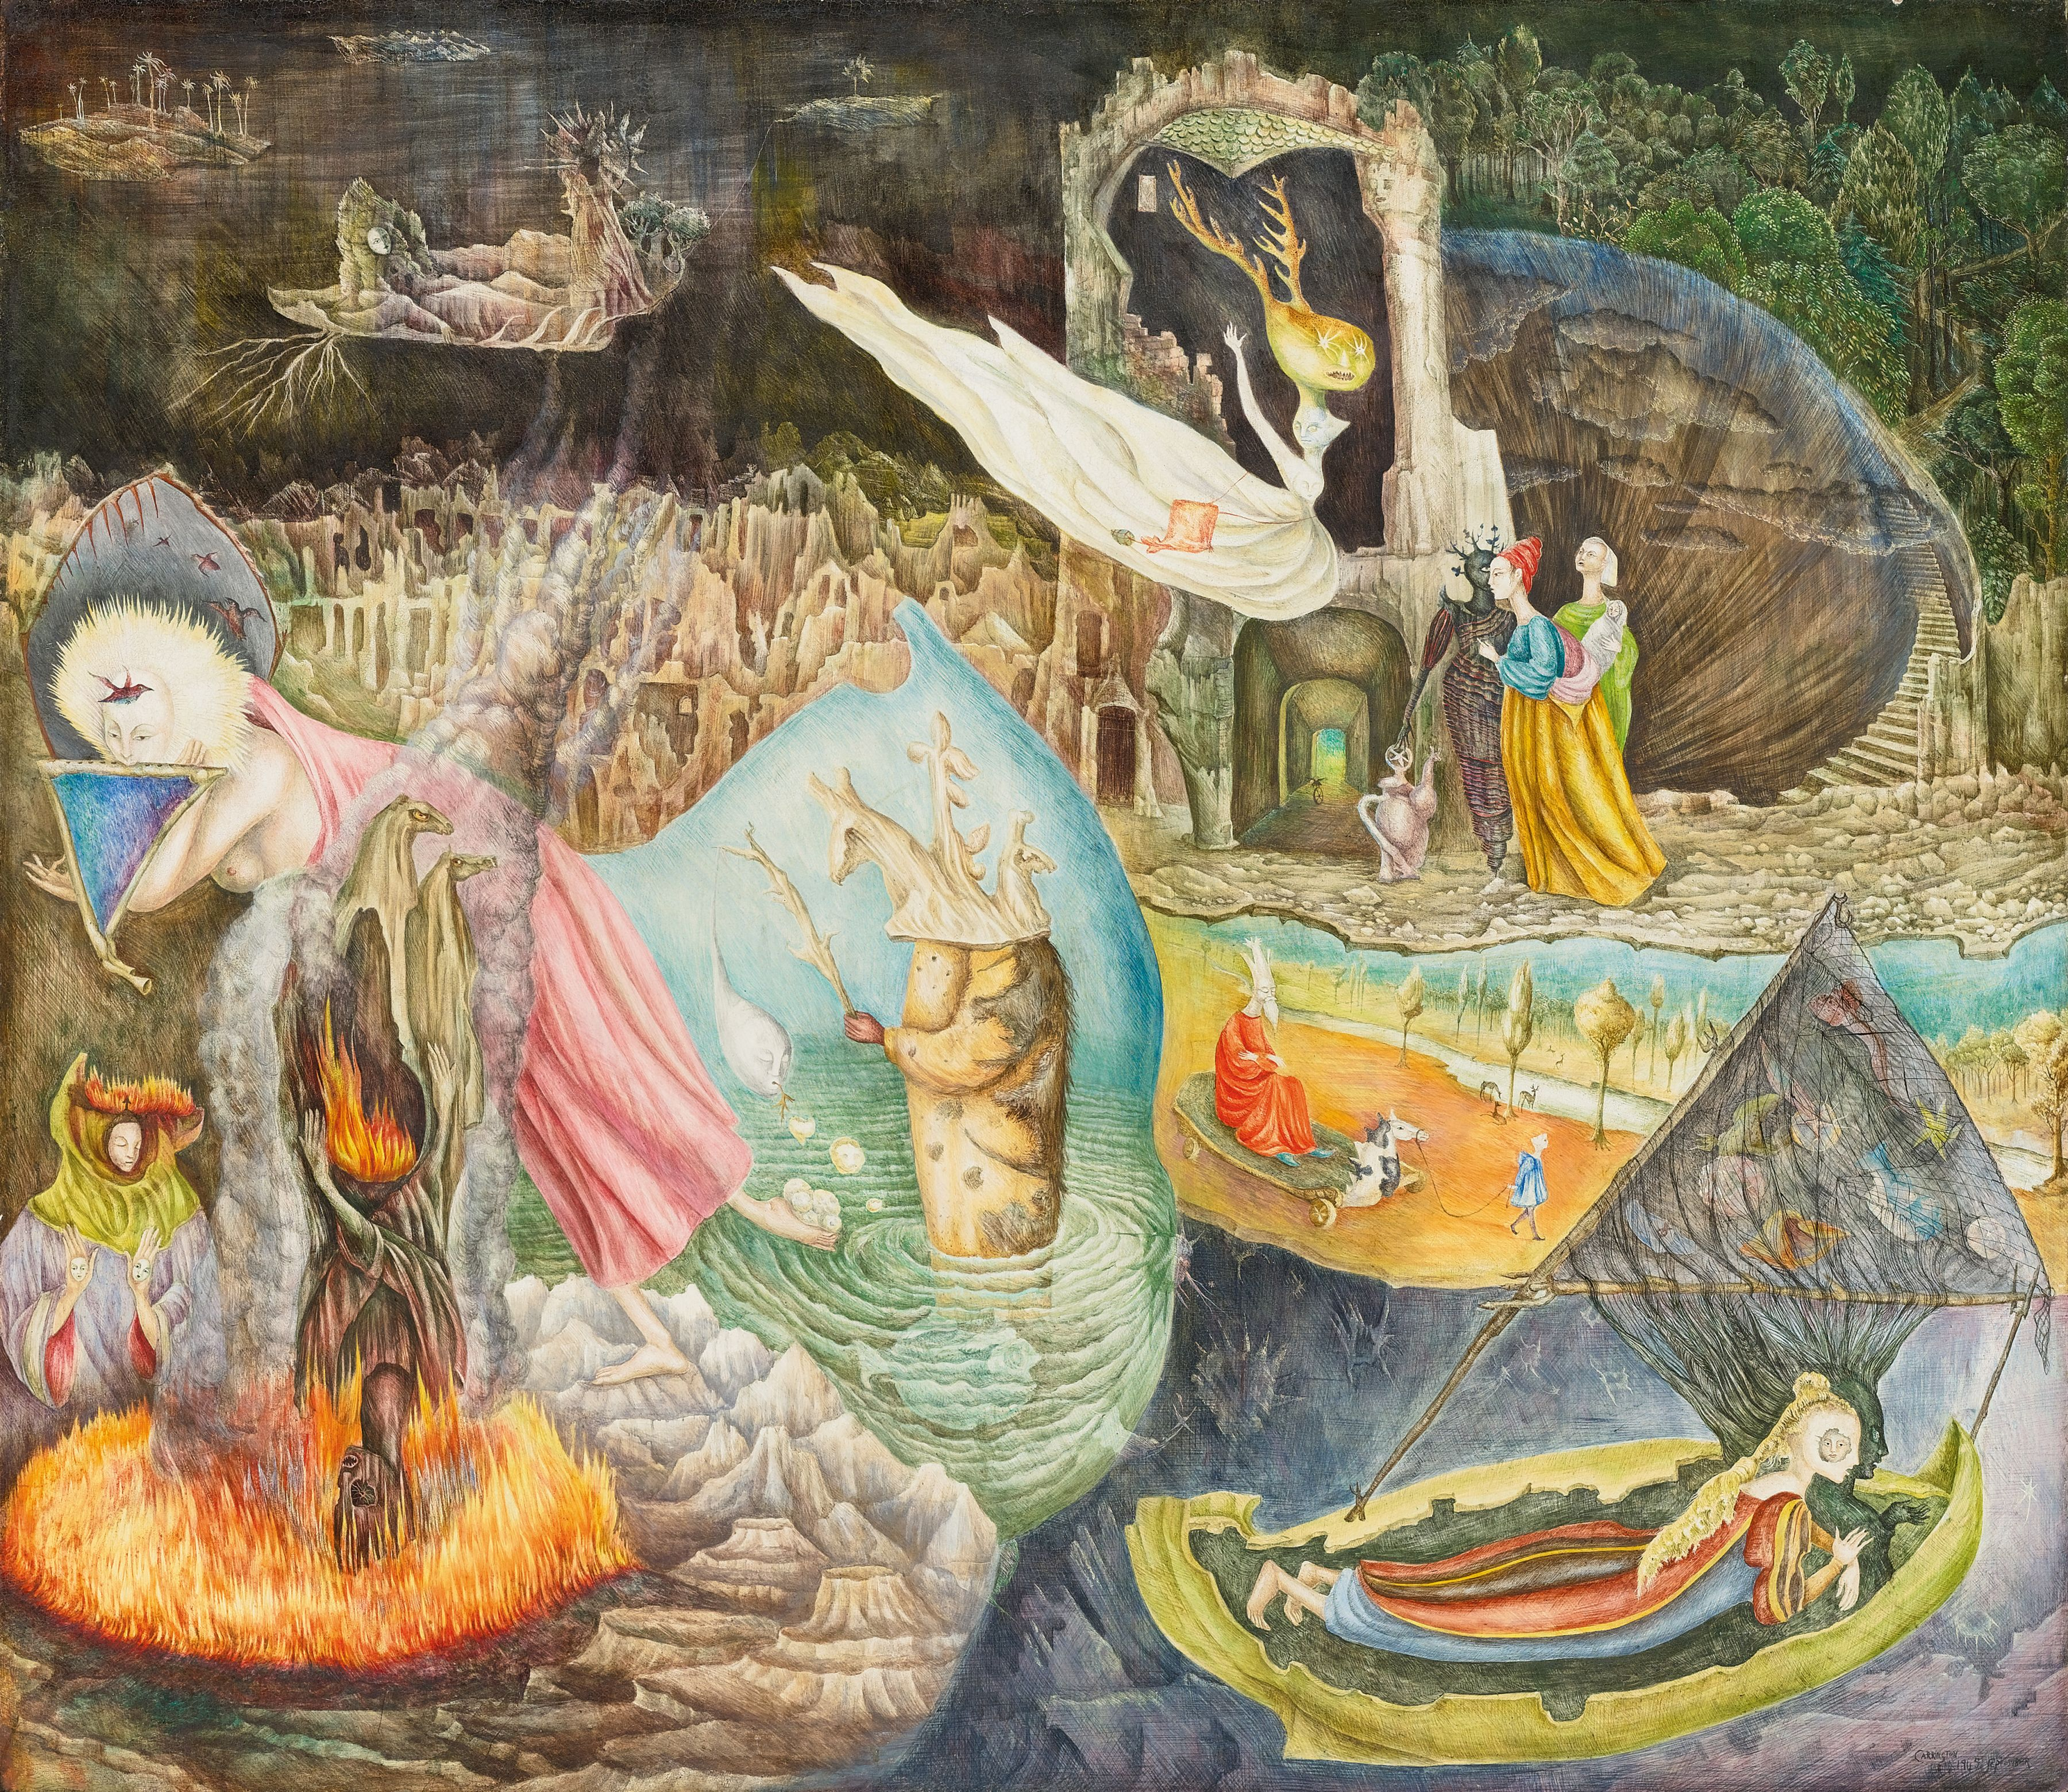 Leonora Carrington. Les Distractions de Dagobert. 1945. Tempera on Masonite, 74.9 by 86.7 cm (29½ by 34⅛ in.). Private Collection © 2019 Leonora Carrington / Artists Rights Society (ARS), New York